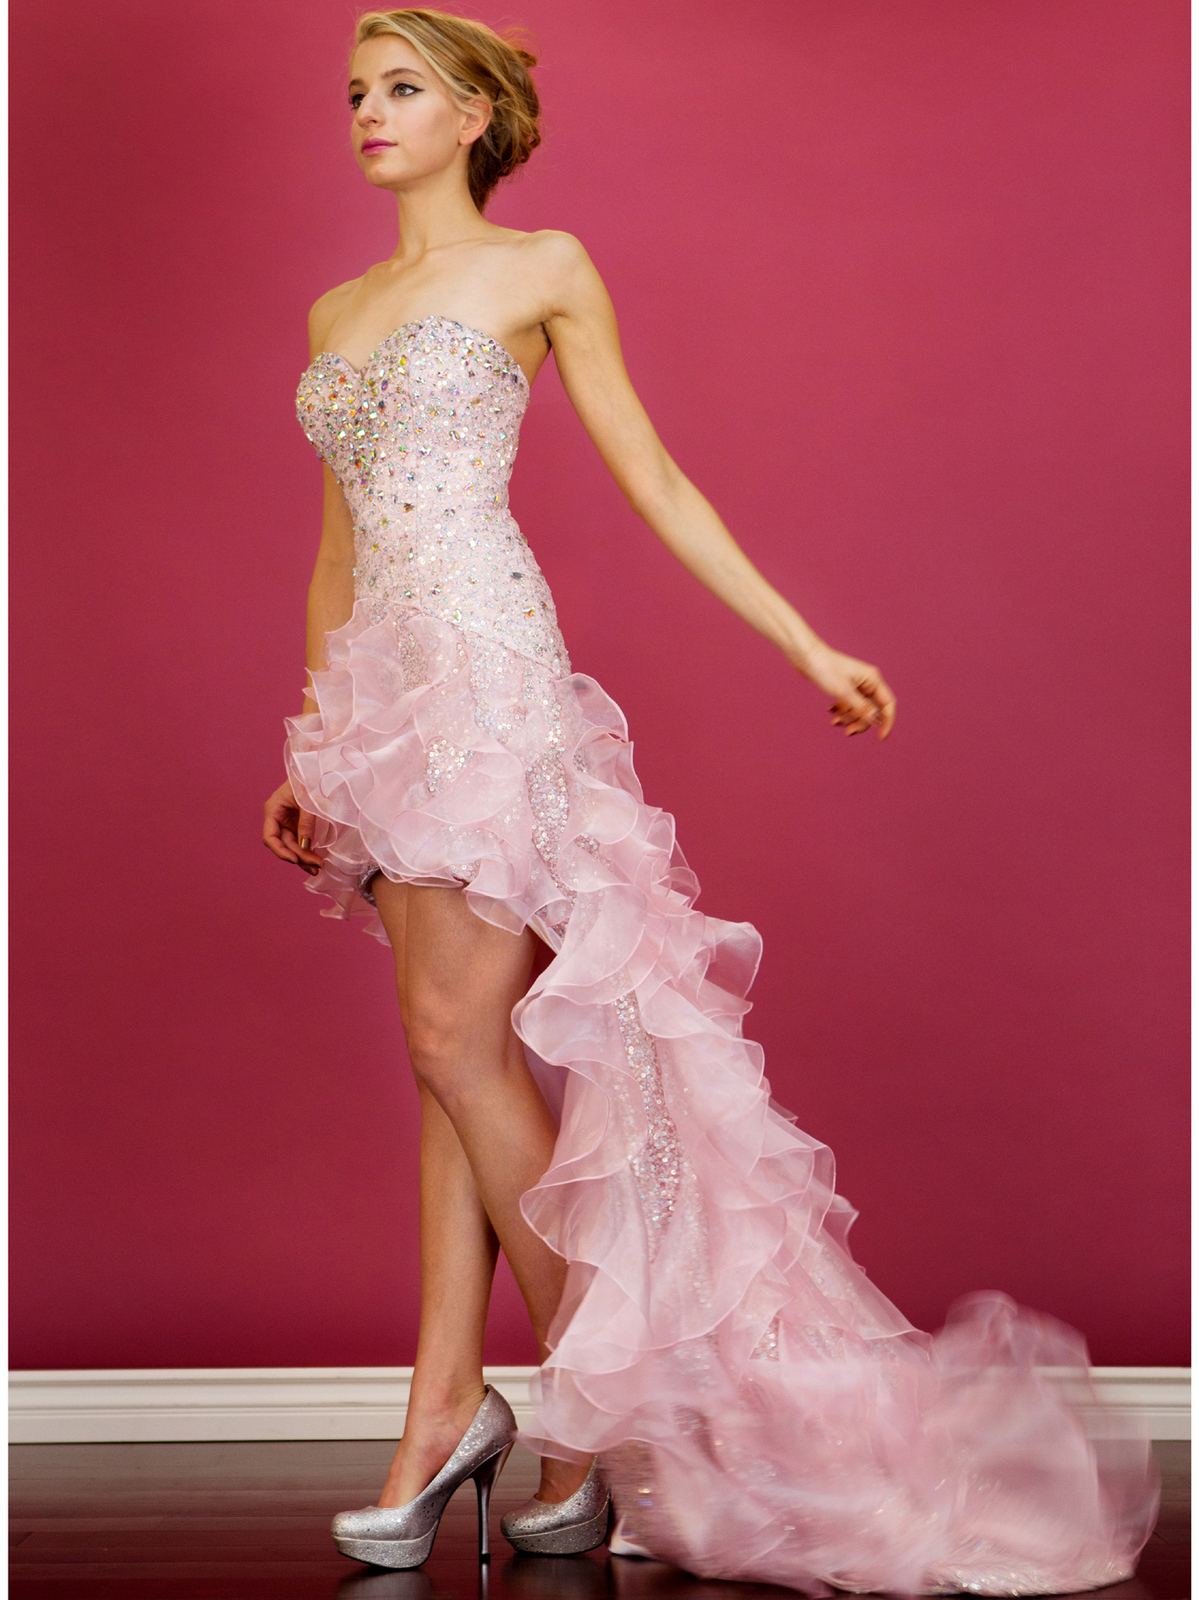 Baby Pink High Low Train Prom Dress | Sung Boutique L.A.